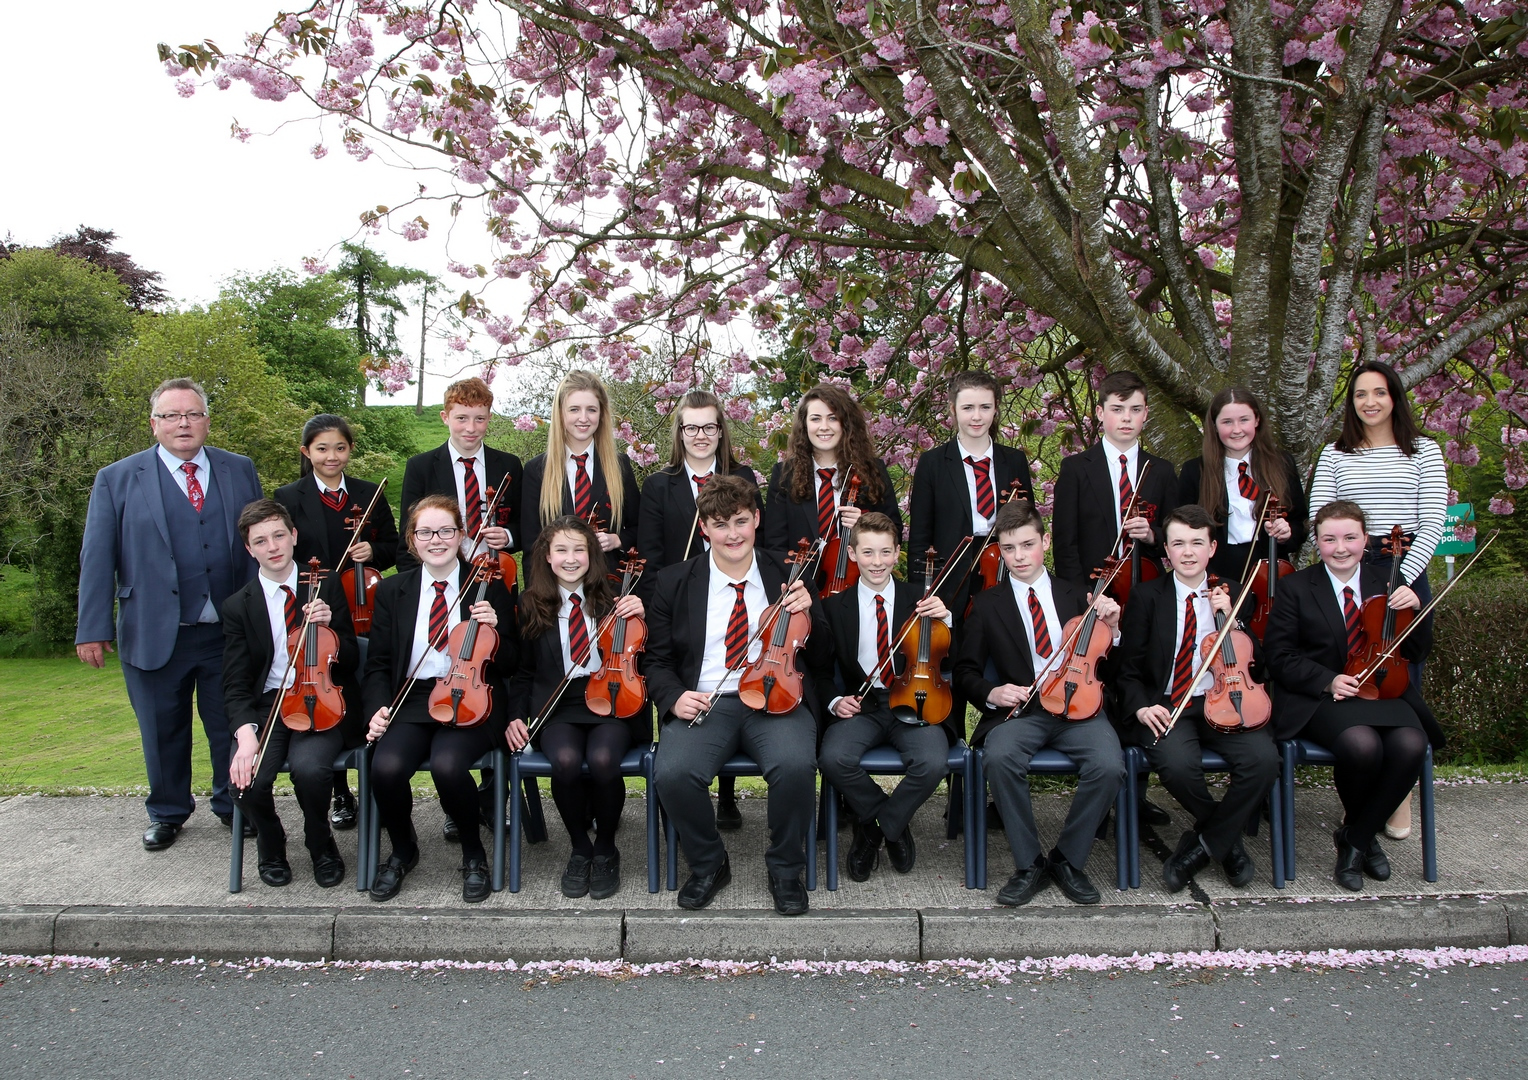 Some members of the School Fiddle Orchestra & Choir